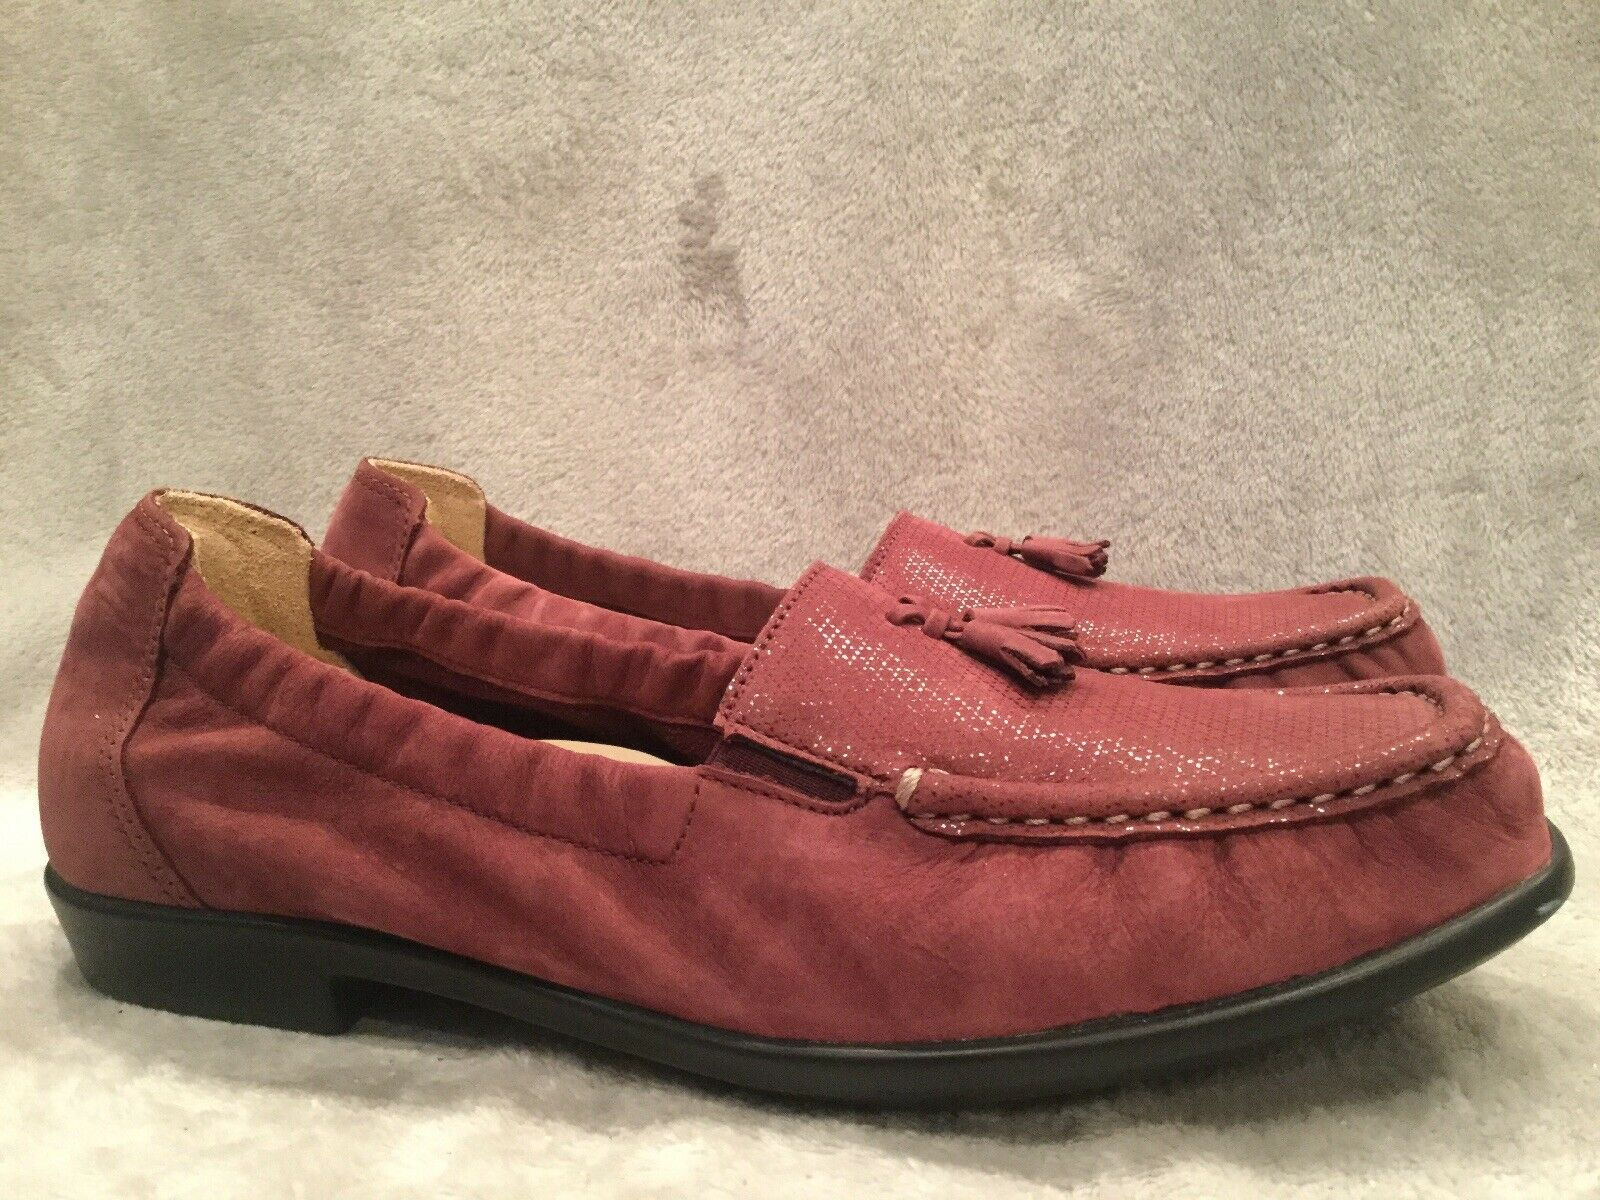 SAS Hope Wine Suede Tassle Loafers Casual Comfort shoes Womens Size 8 Wide